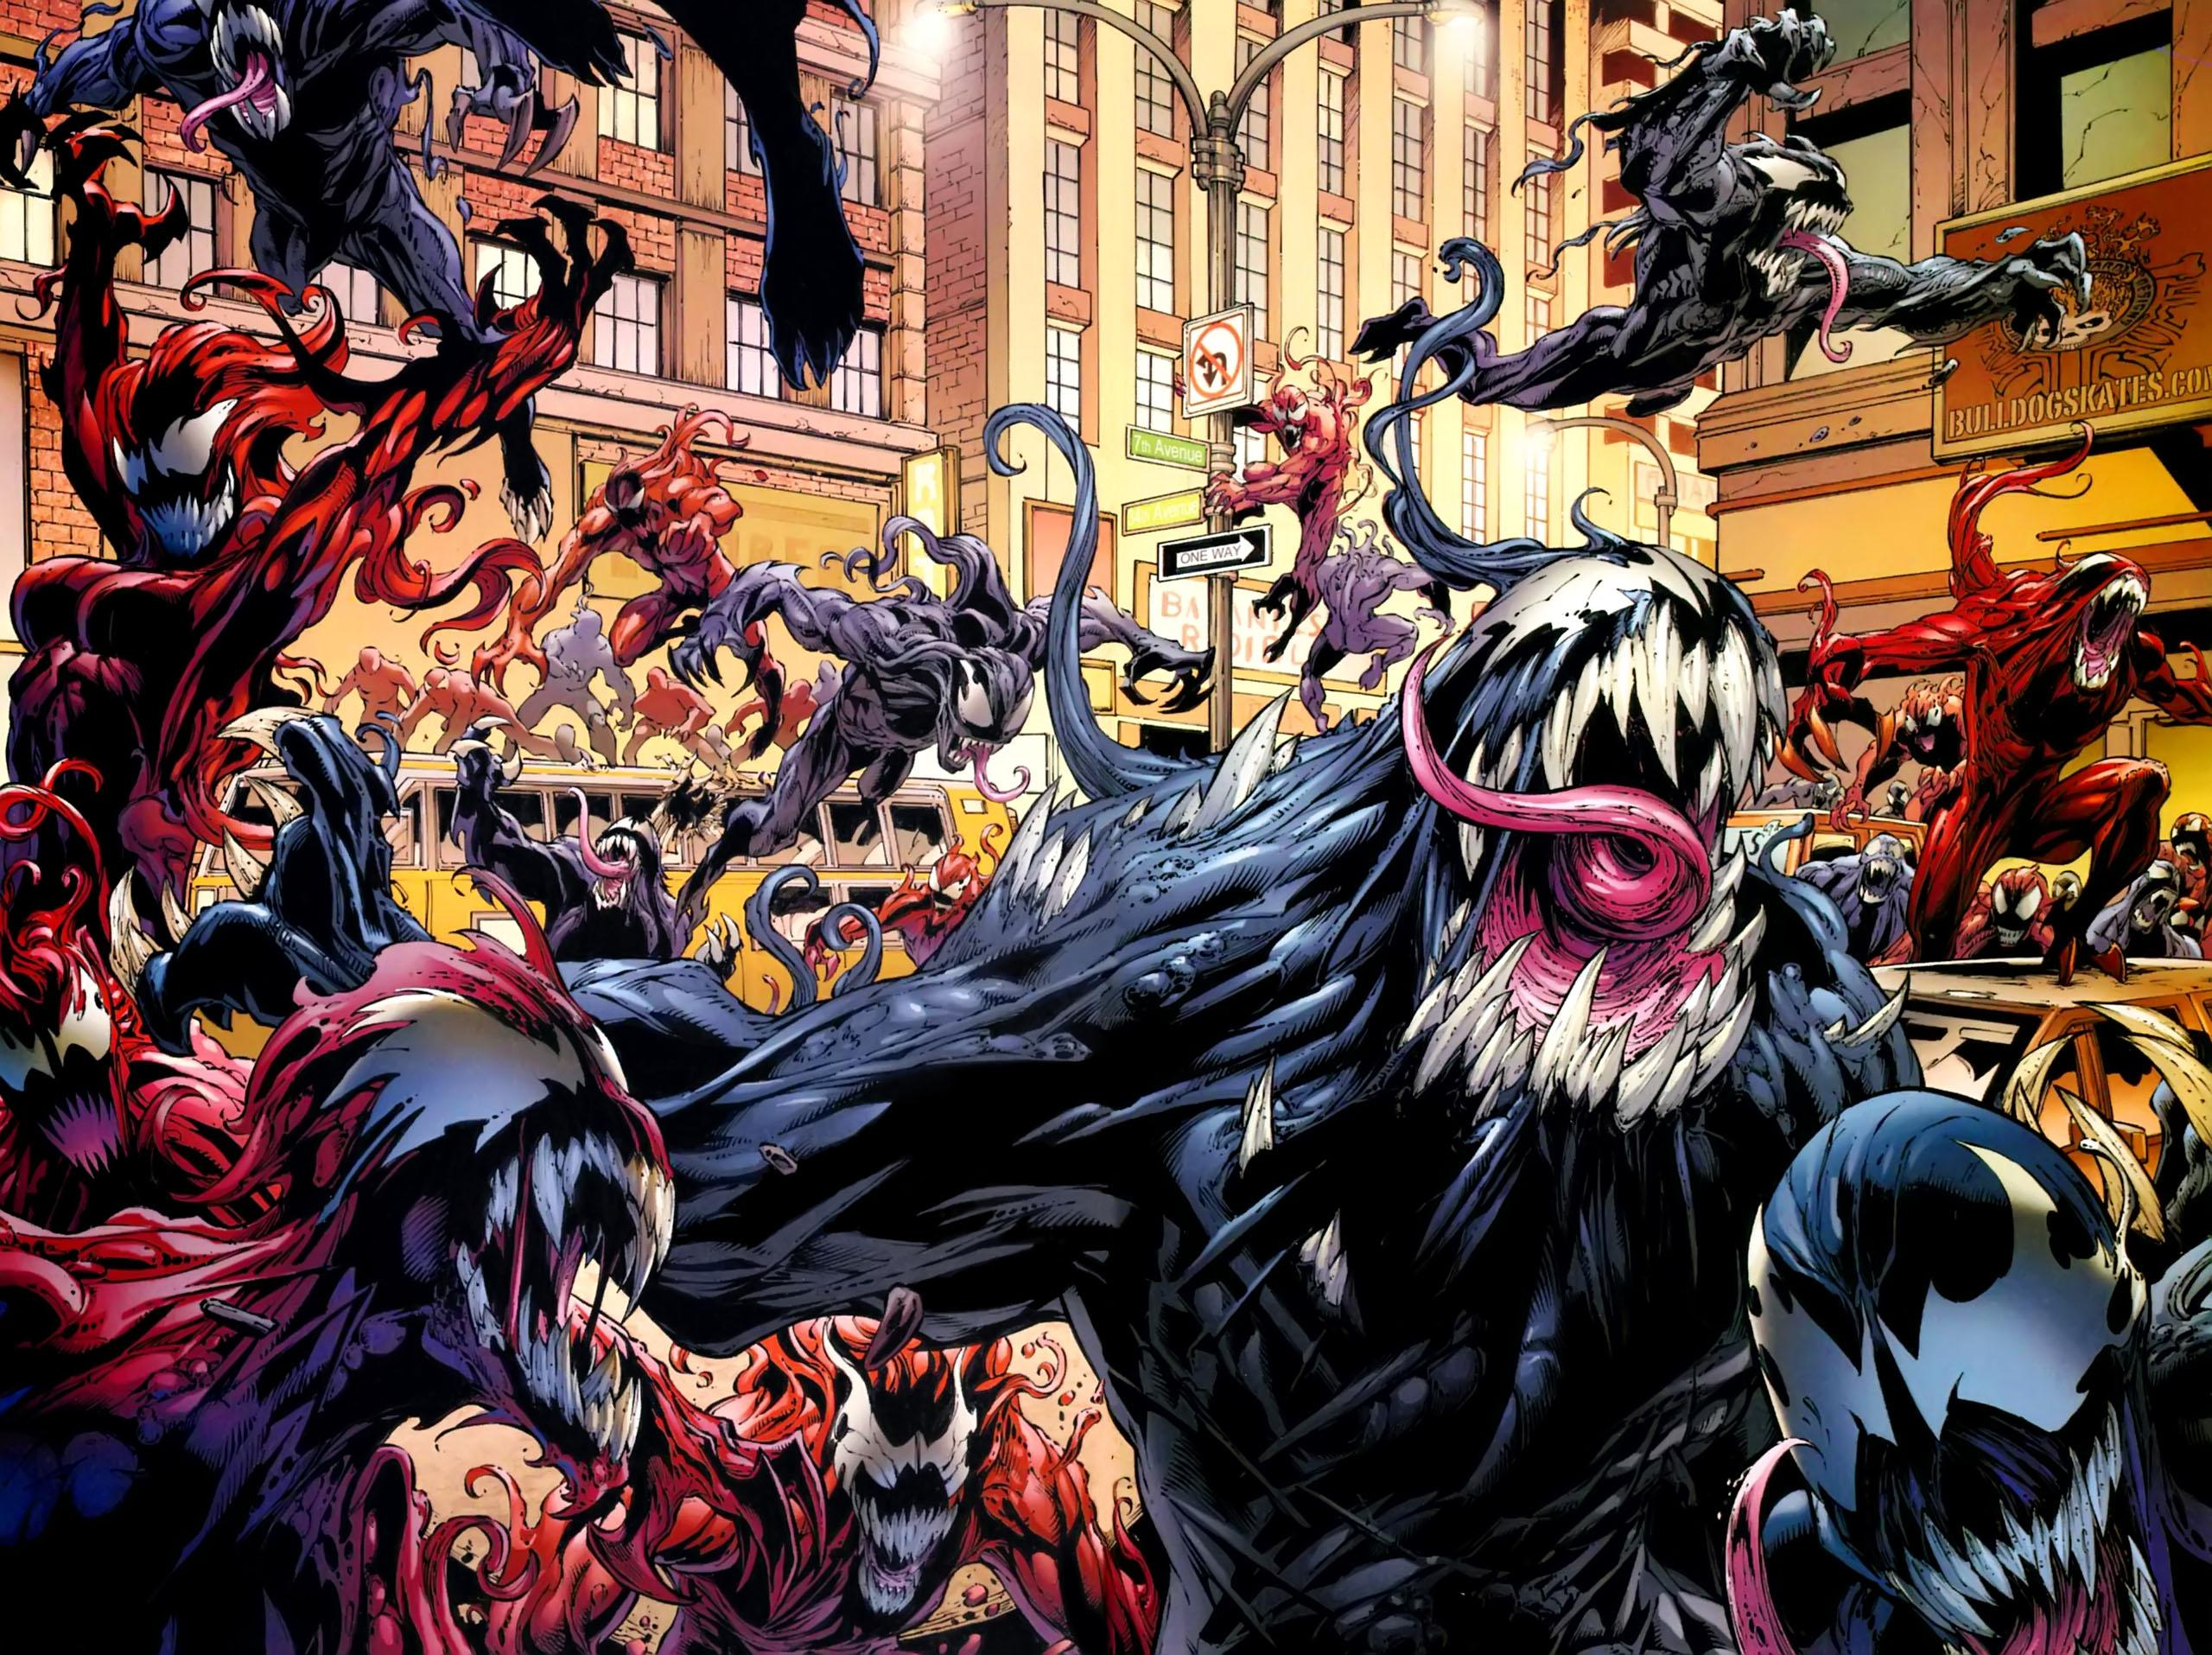 Venom #20 is a game changer for Symbiotes, Venom, and the future of the series